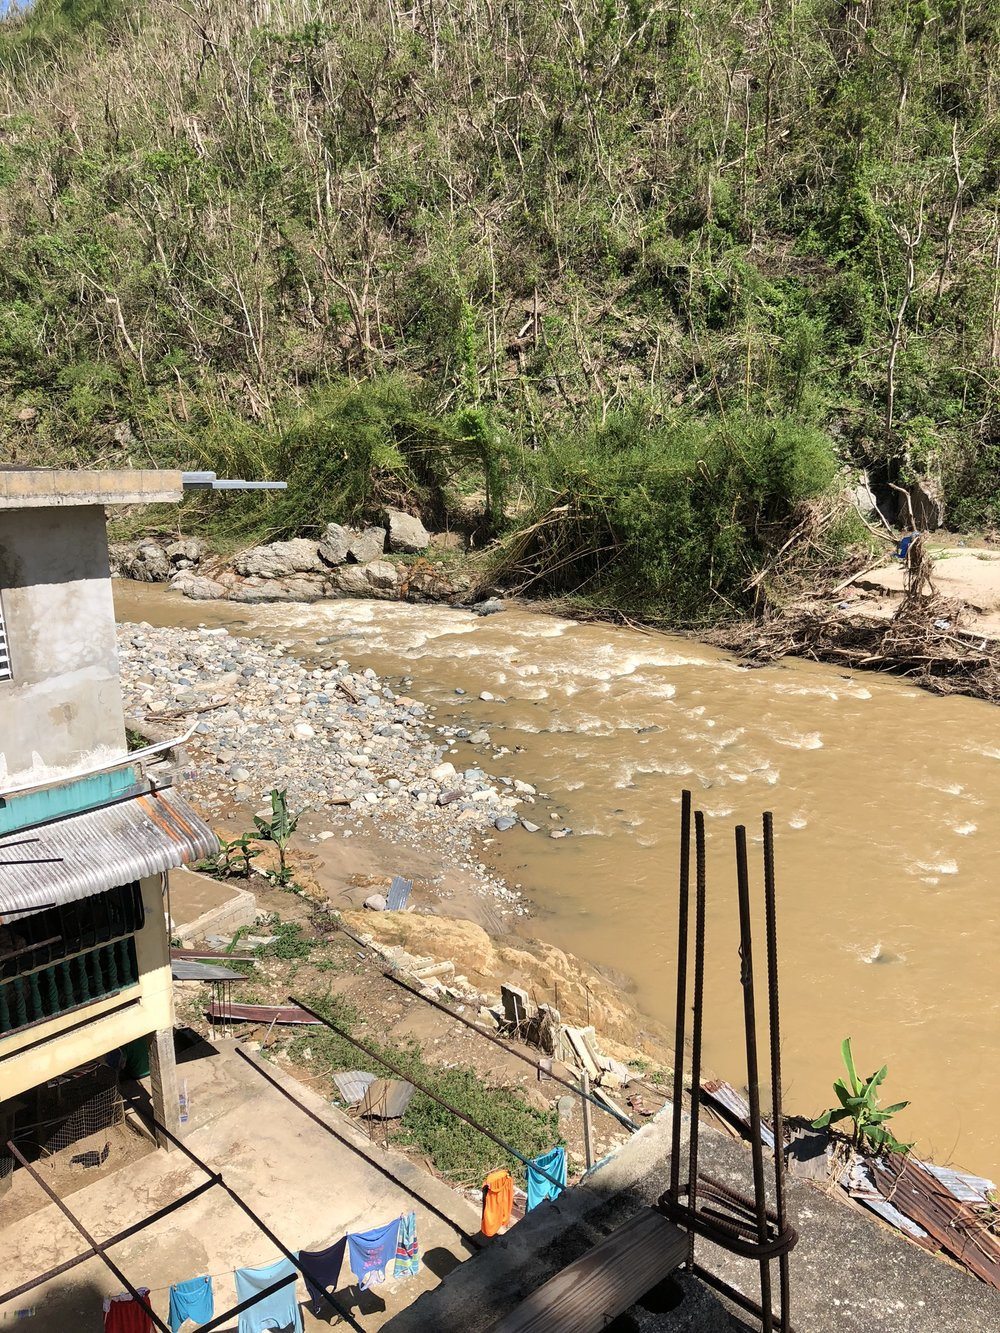 The Vivi River (Rio Vivi) in Utuado, Puerto Rico, after hurricane Maria, washed out a primary bridge that accessed a large portion of the municipality.